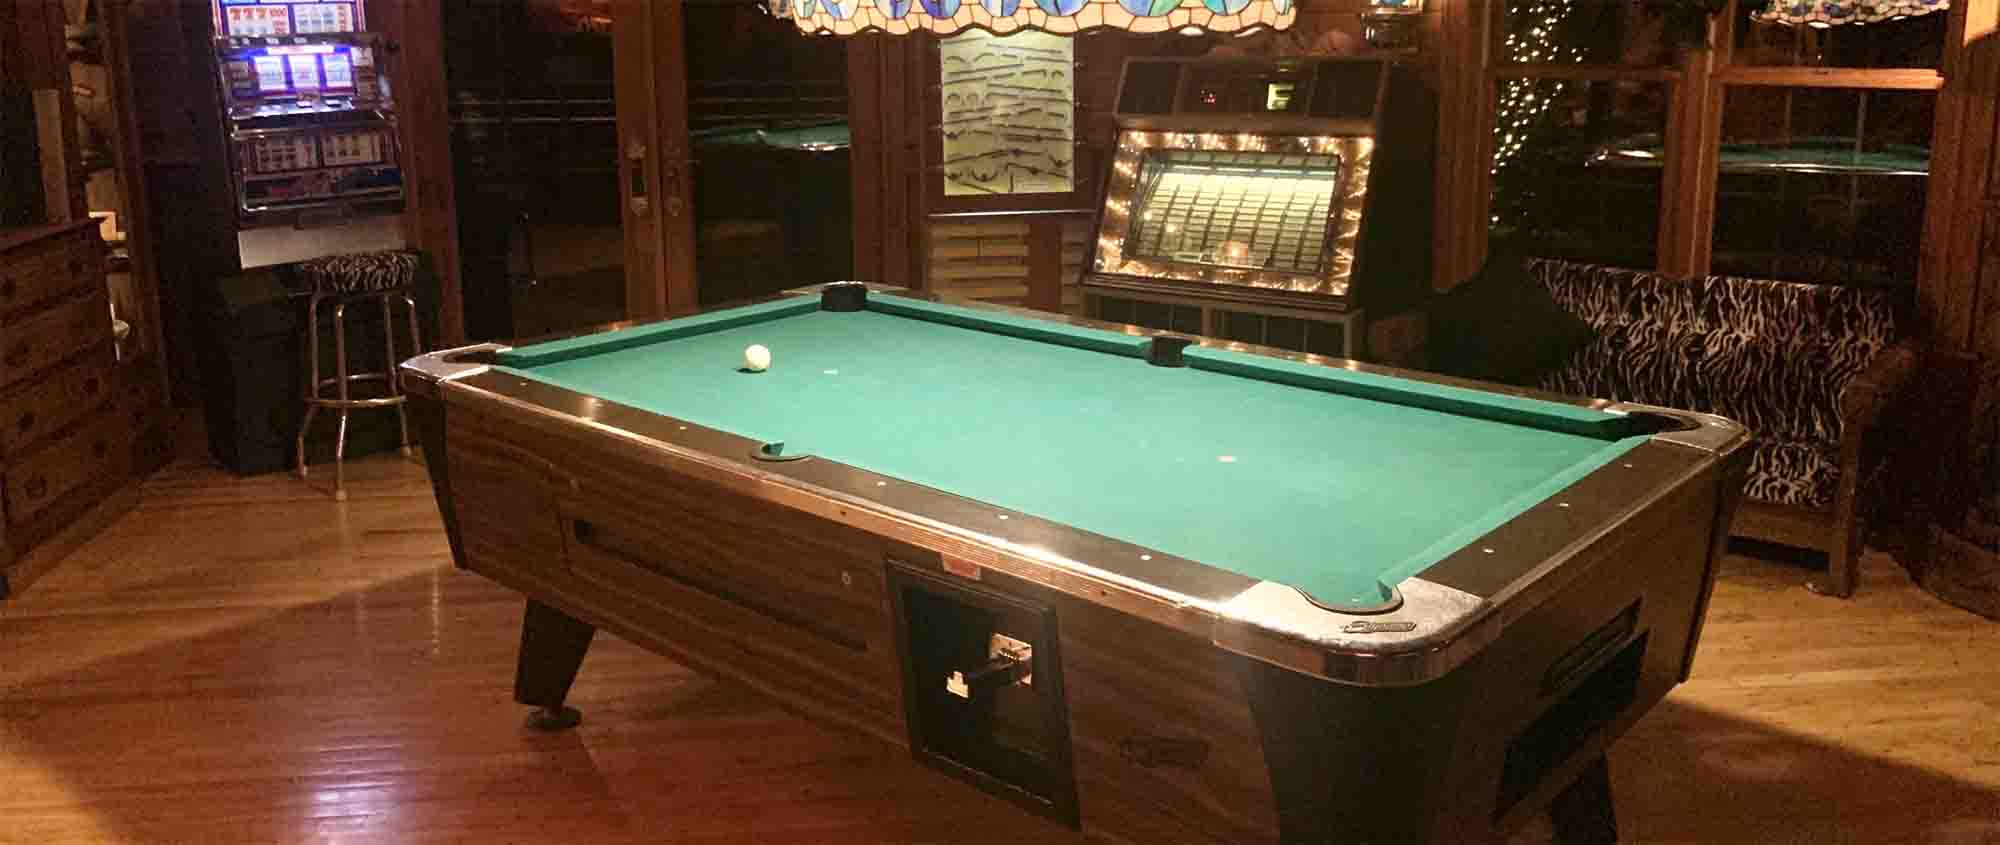 Vacation Rental Near Me with Pool Table in Wisconsin - PRIVATE